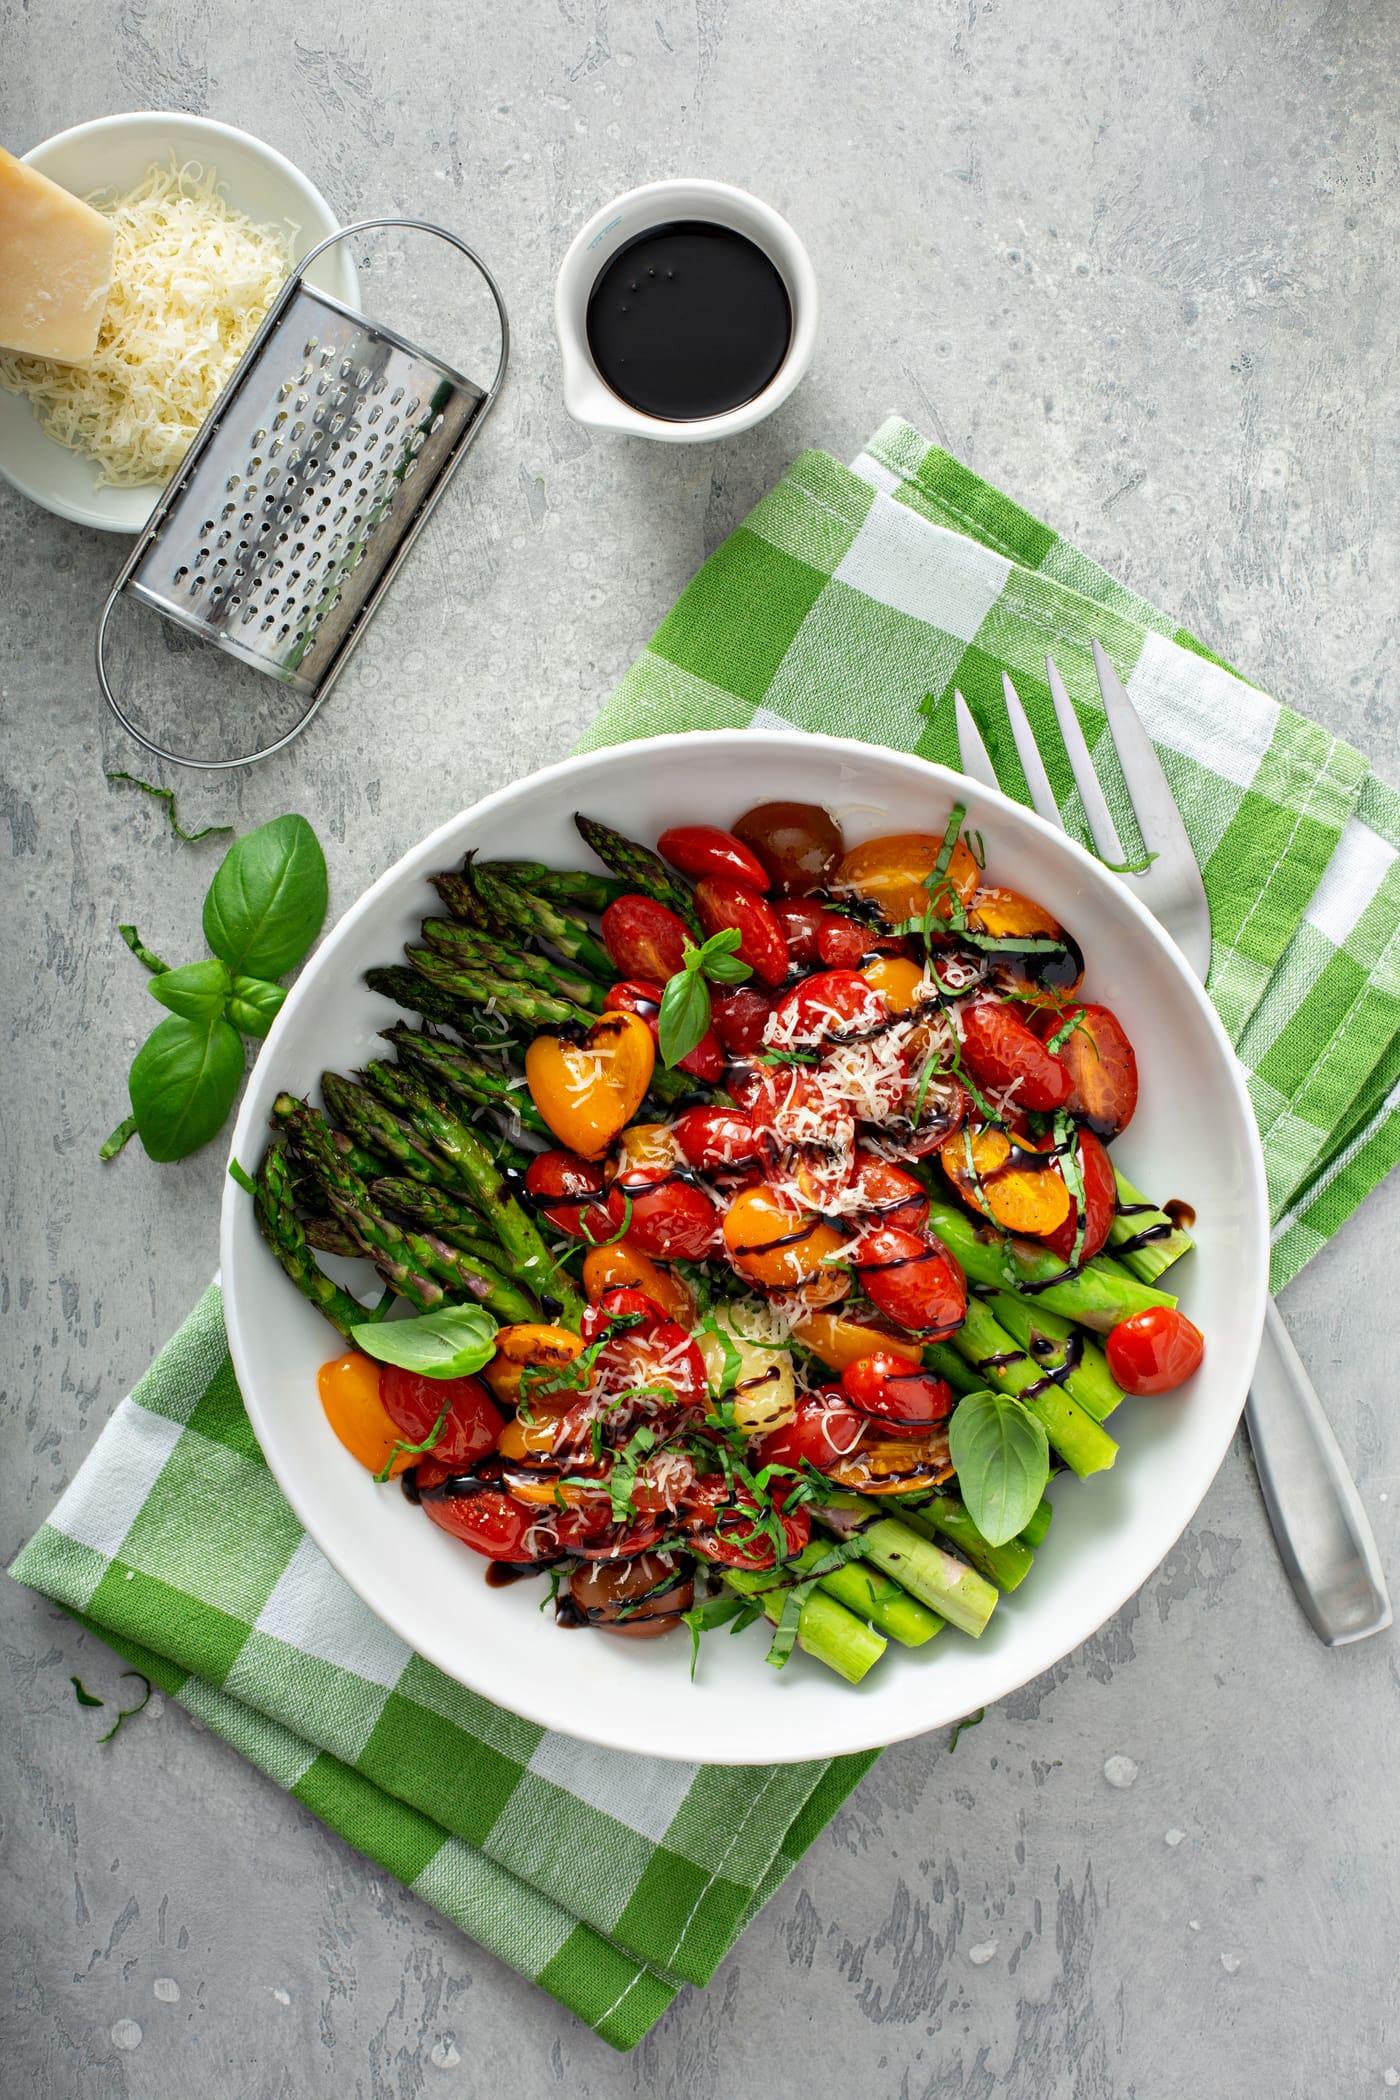 A serving dish of balsamic glazed tomatoes and asparagus. The bright green asparagus and sliced red and yellow heirloom tomatoes are drizzled with balsamic glaze and sprinkled with grated Parmesan cheese. The serving dish is sitting on a green and white checked cloth. There is a fork beside the dish and a cup of balsamic glaze and a dish of grated cheese and a cheese grater in the background.